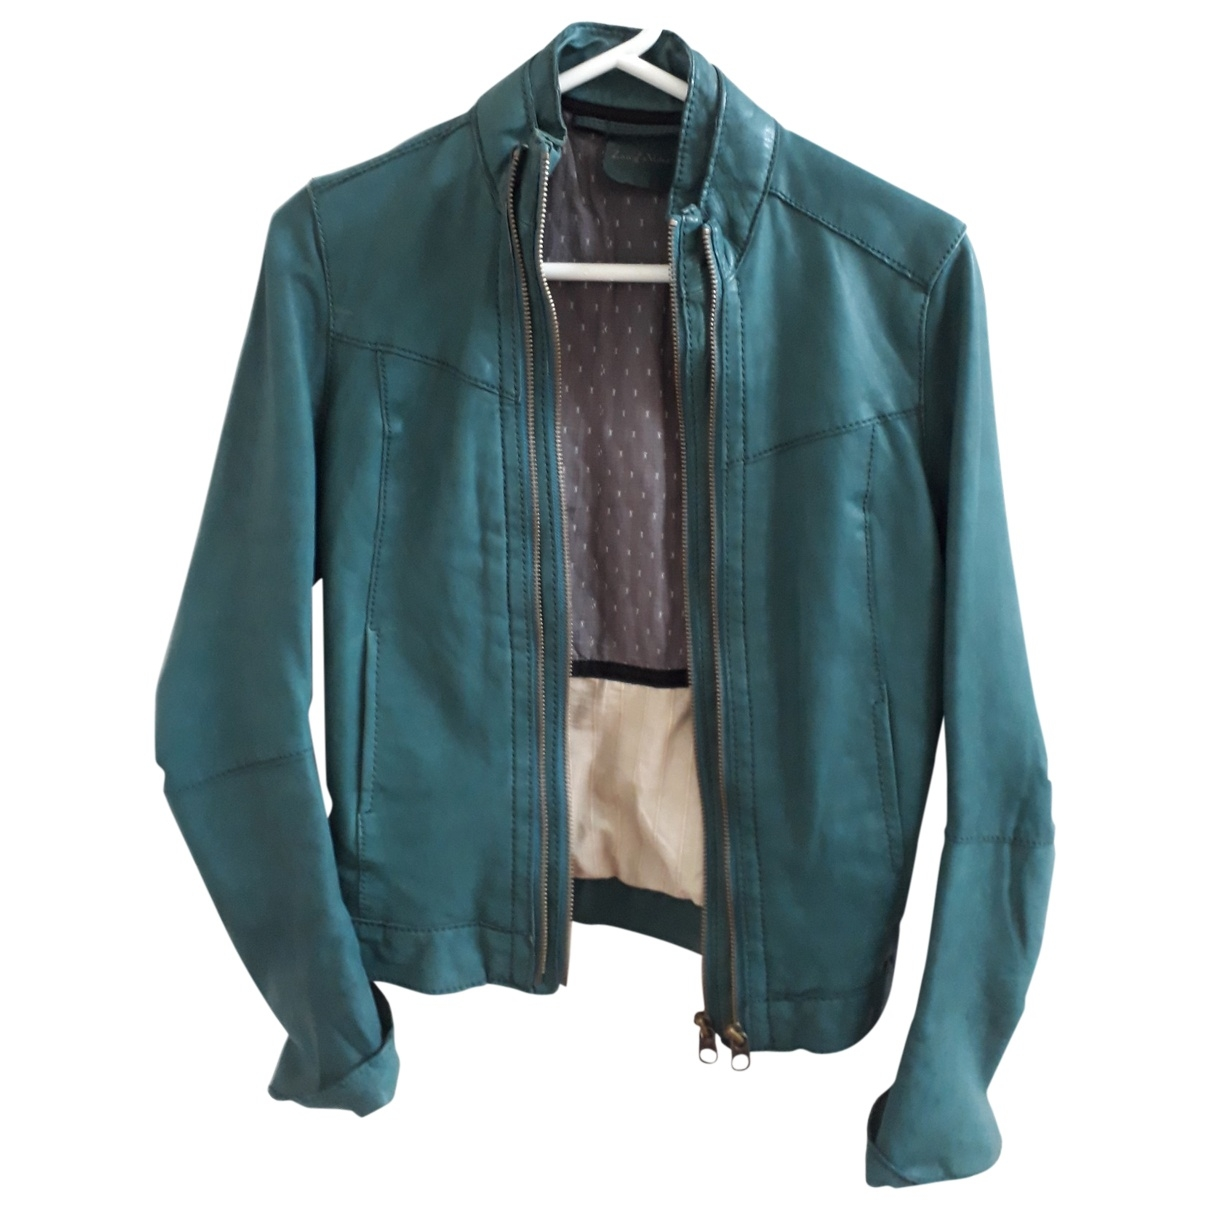 Zadig & Voltaire \N Turquoise Leather jacket for Women S International